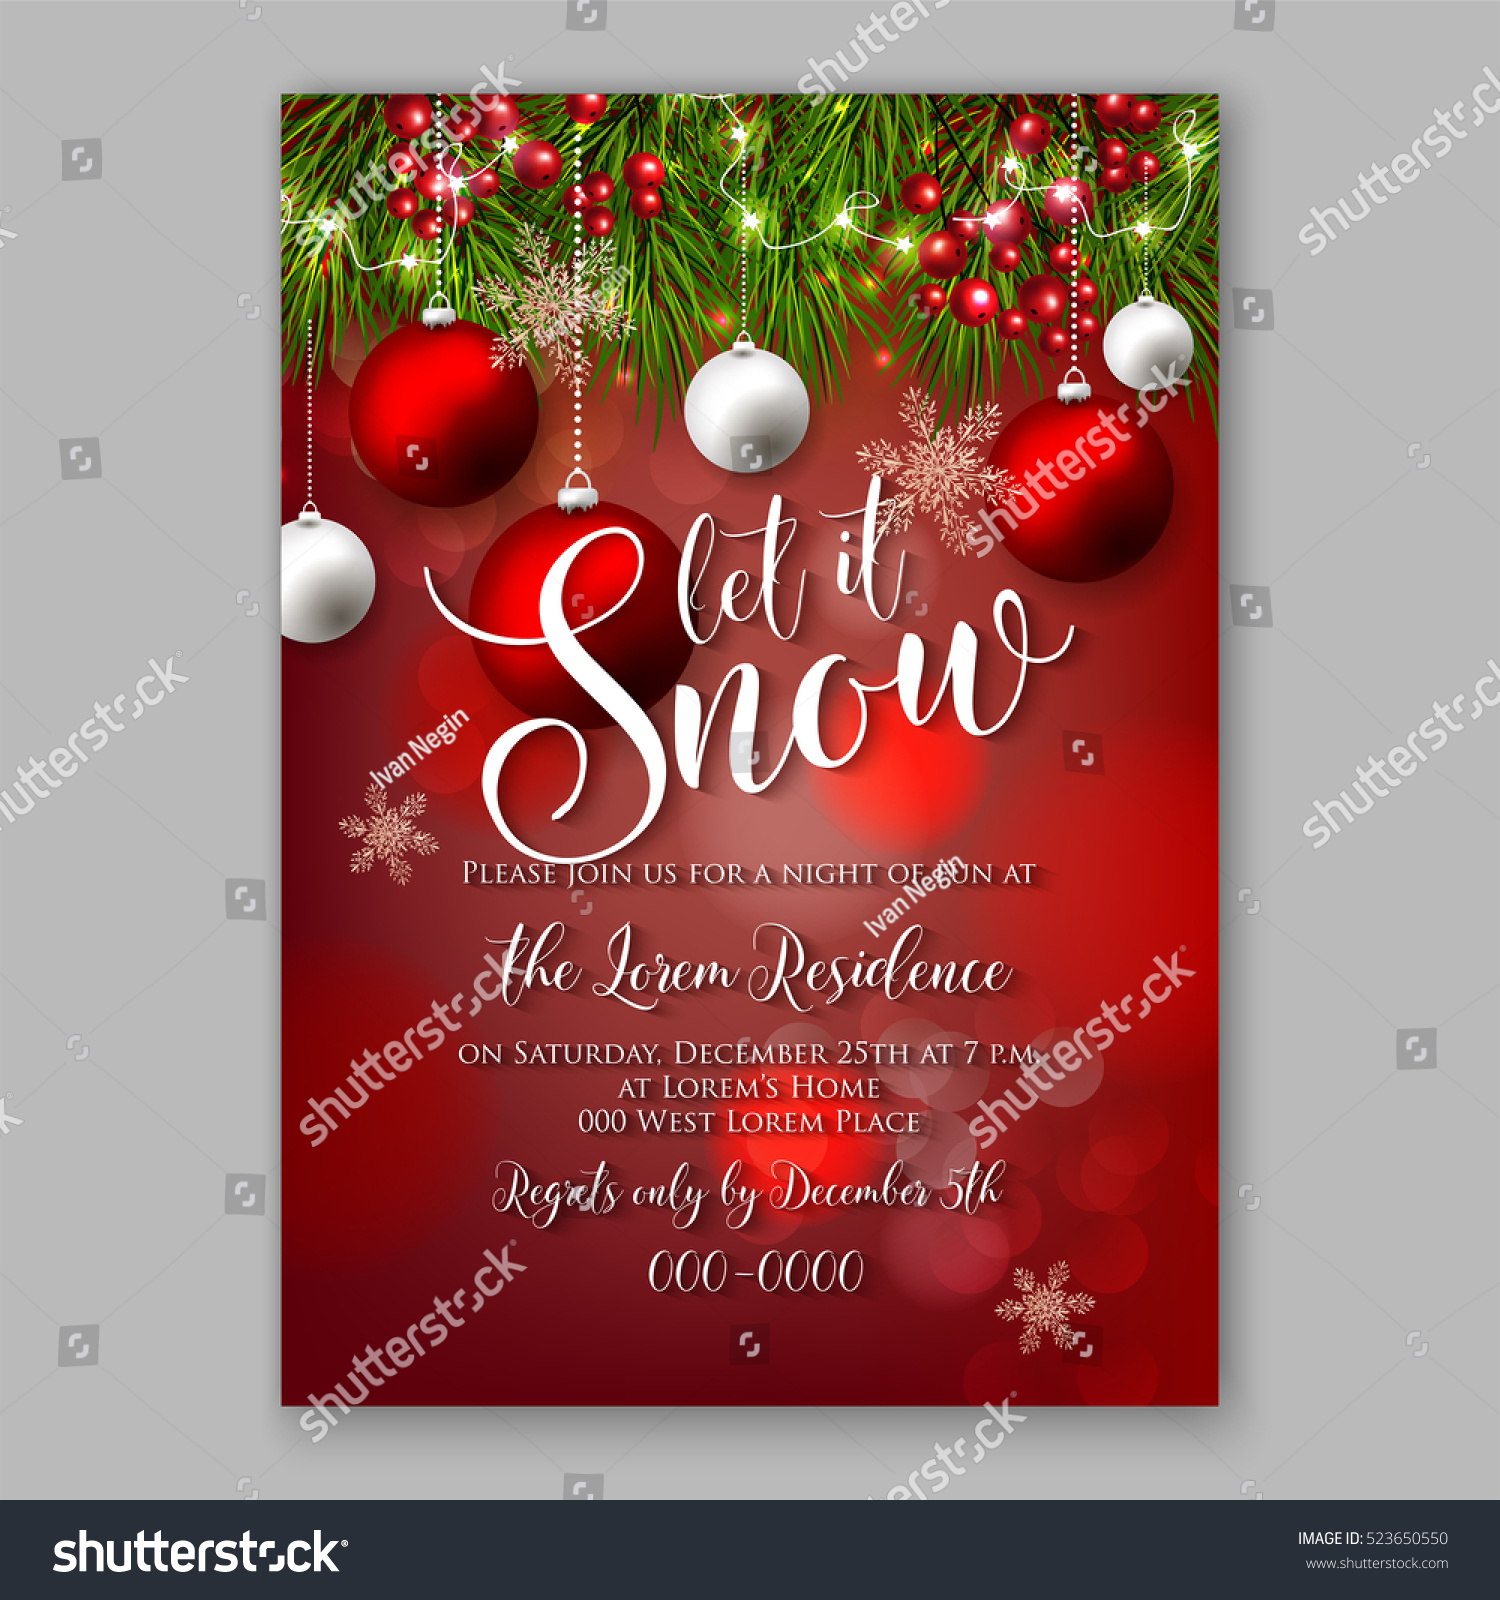 Let Snow Christmas Party Invitation Poster Stock Photo (Photo ...